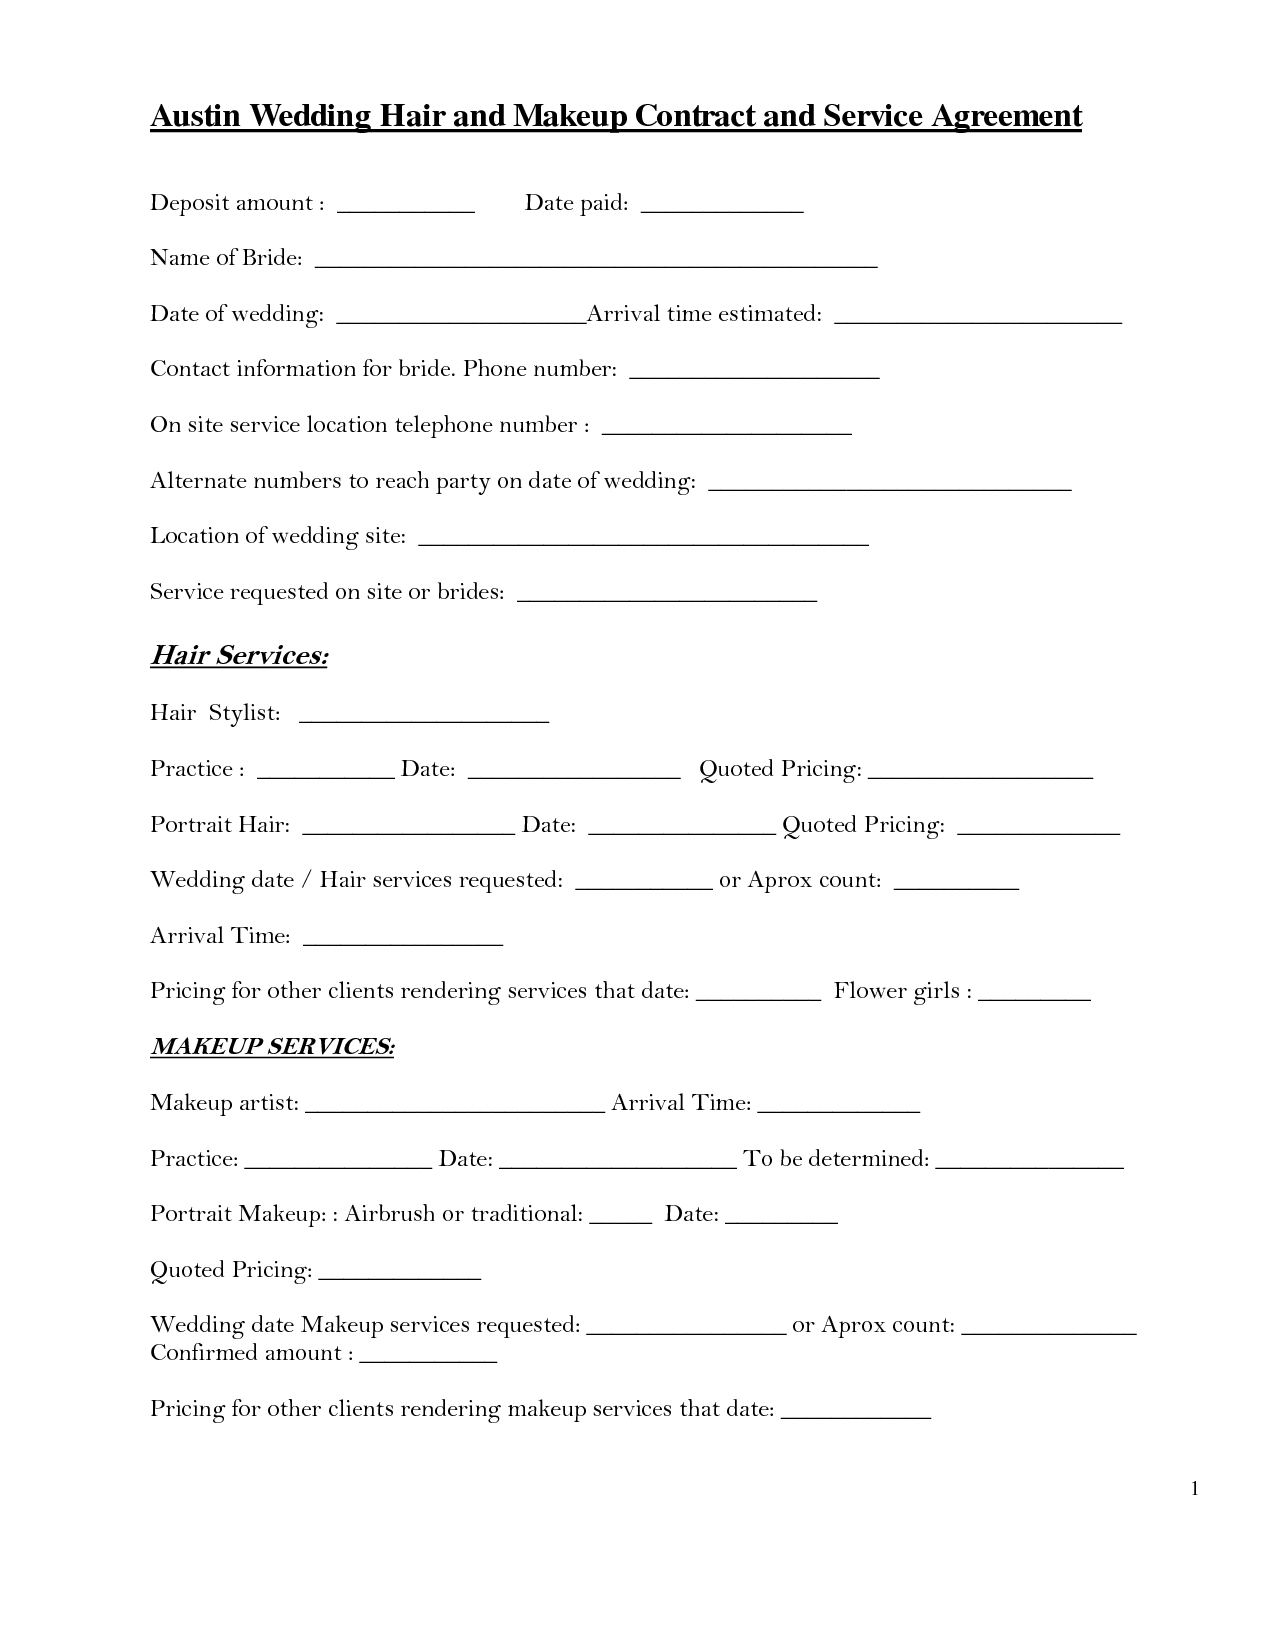 Hair Stylist Wedding Forms And Contract If Instant  Sample